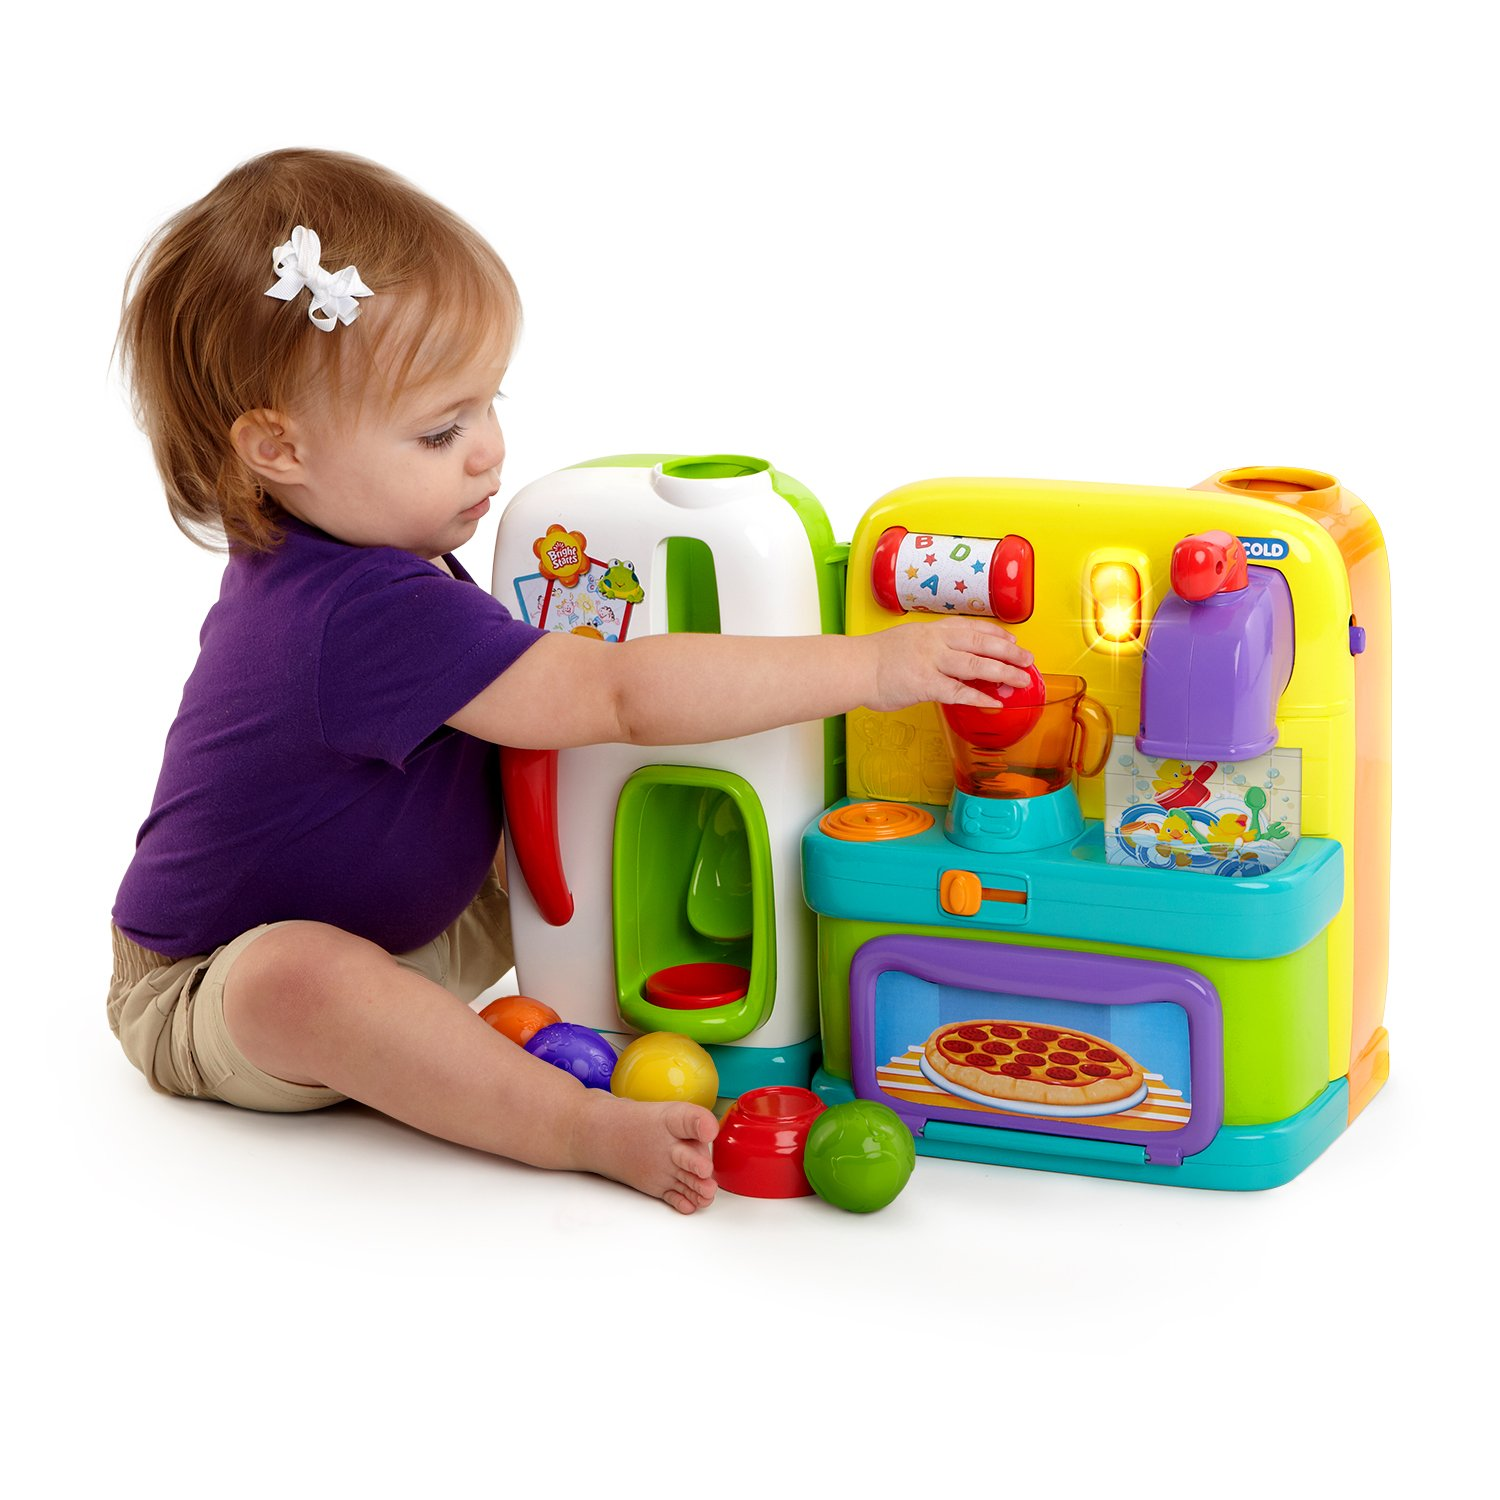 Coolest Toys For Christmas : Best christmas toys for year old girls